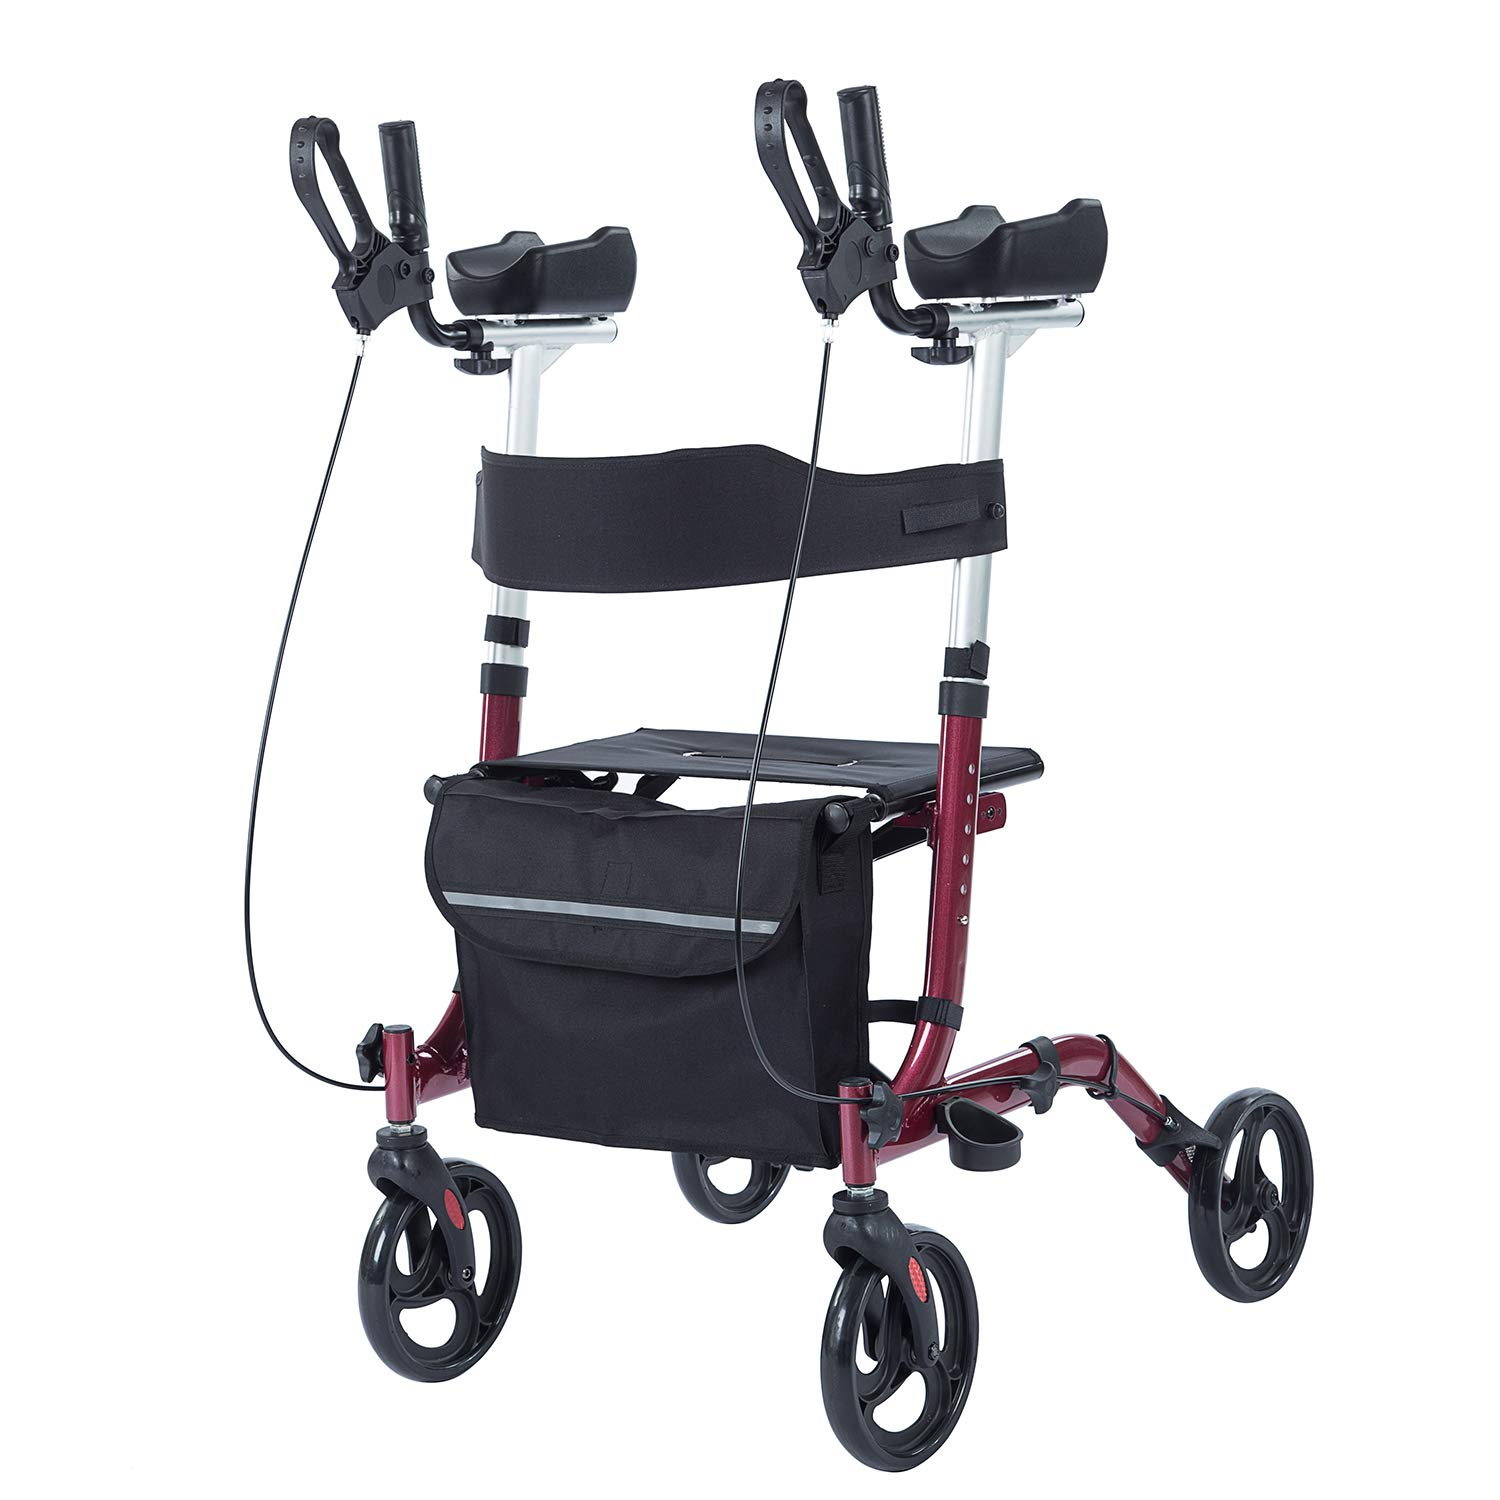 ELENKER Upright Walker,Stand Up Folding Rollator Walker Back Erect Rolling Mobility Walking Aid with Backrest Seat and Padded Armrests for Seniors and Adults,Red by ELENKER